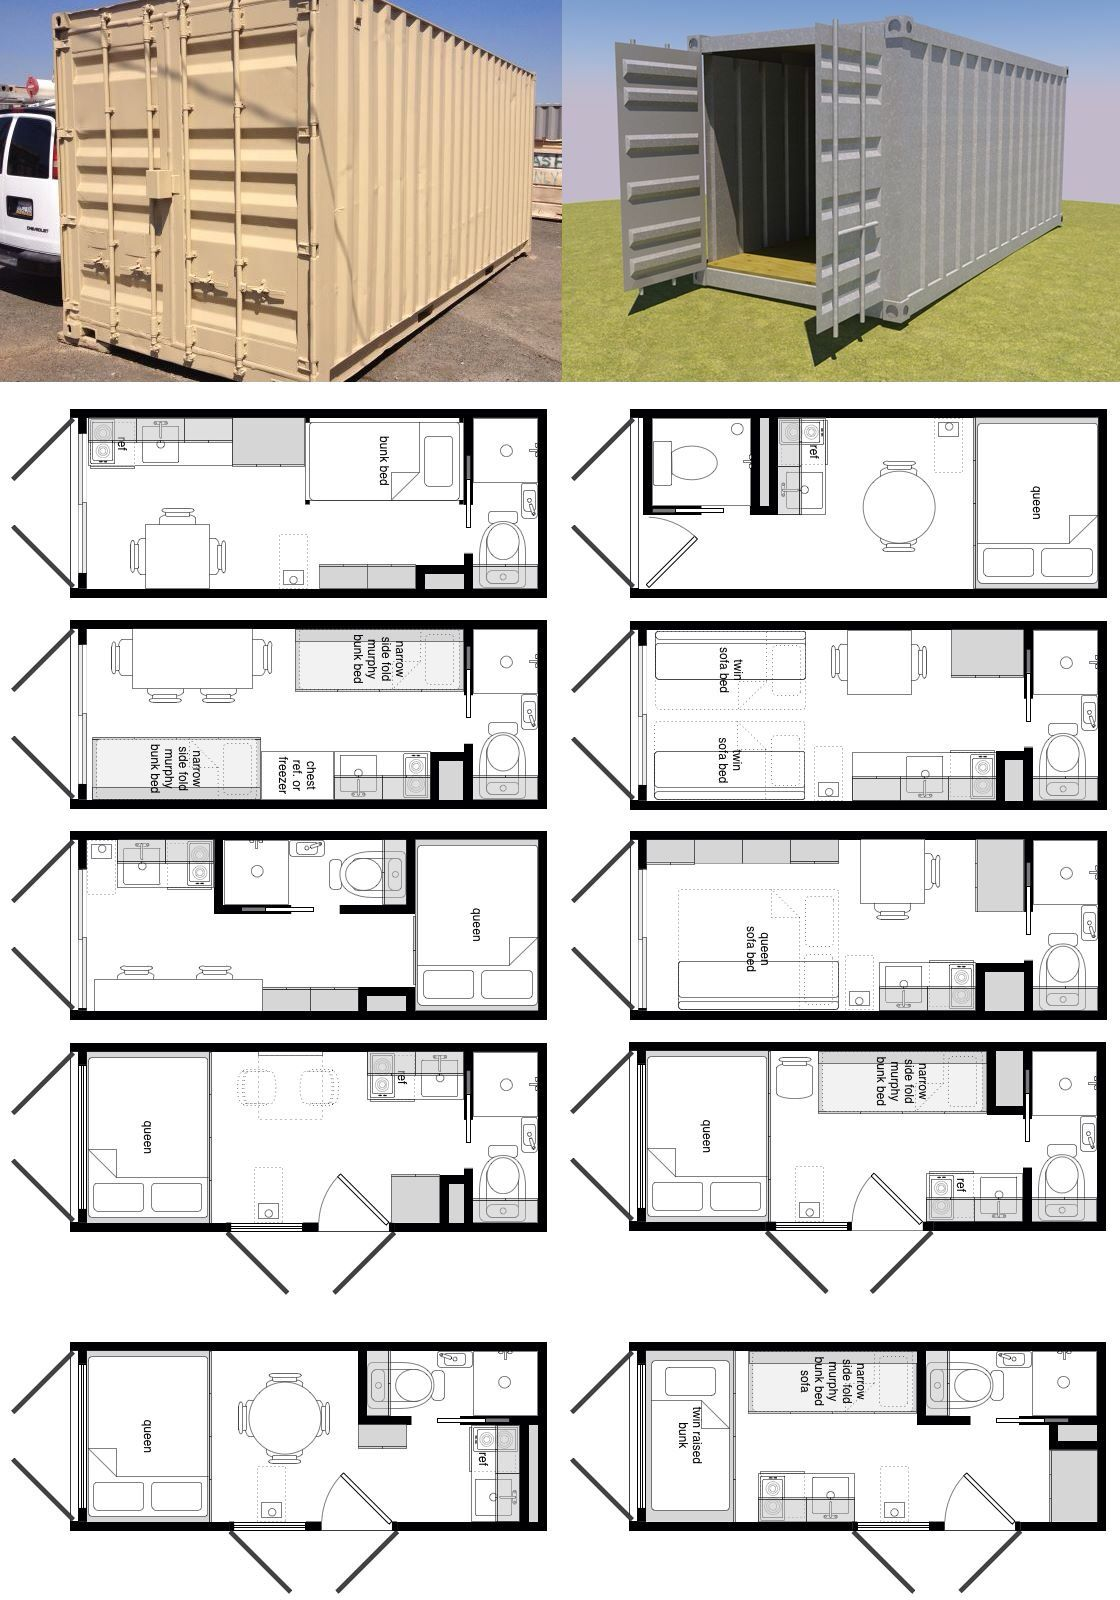 Design Shipping Container House Floor Plans how to build your own shipping container home house cargo plans in 20 foot floor plan brainstorm tiny living